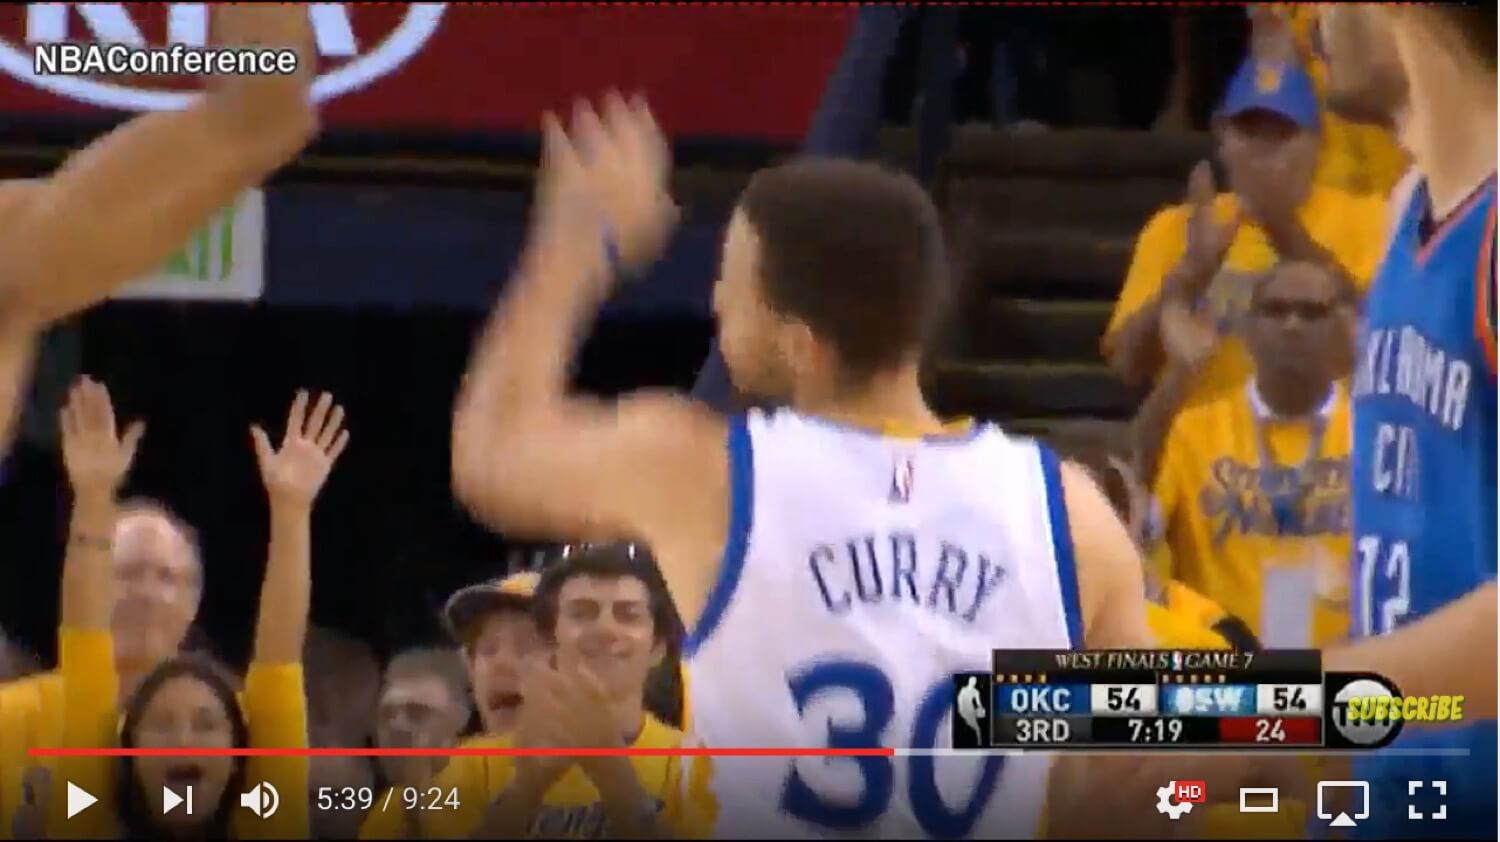 Lessons on humility and hard work from the Warriors vs Thunder basketball playoffs battle